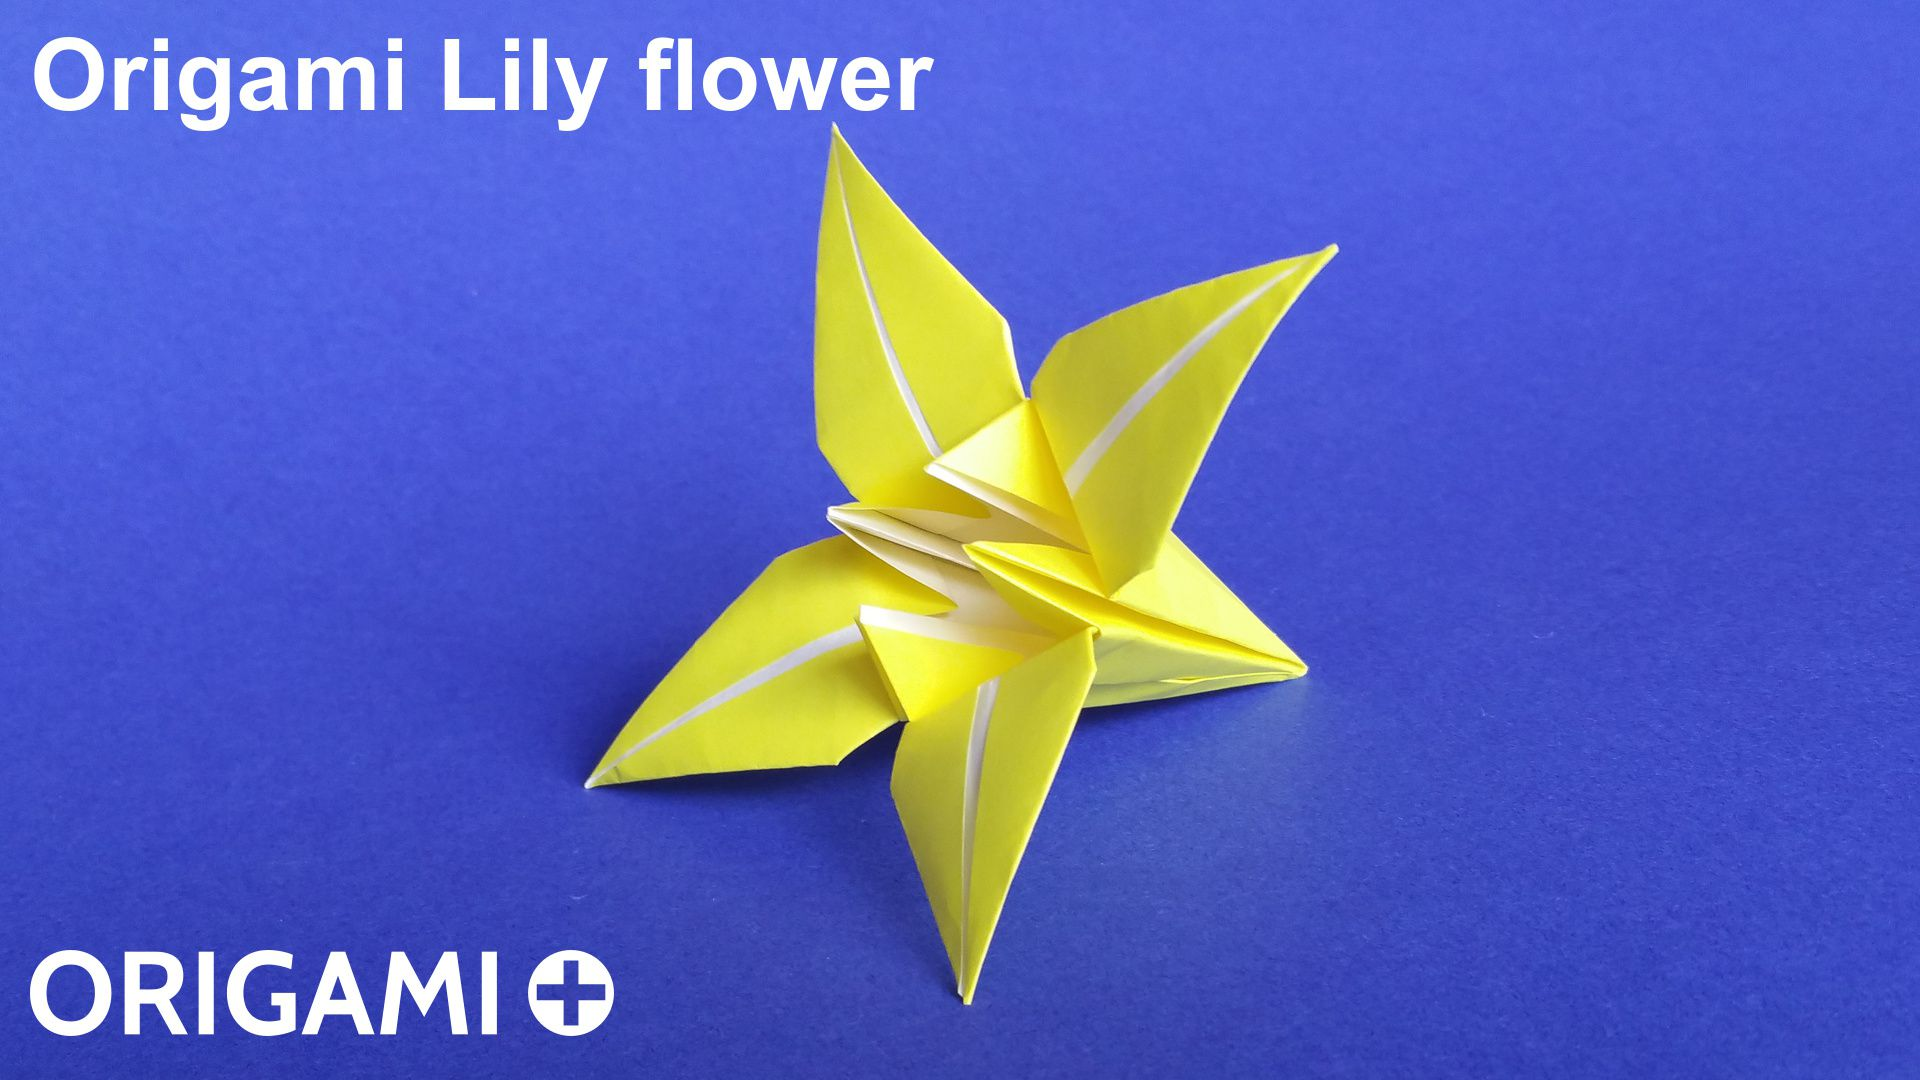 Origami Lily flower - photo#50